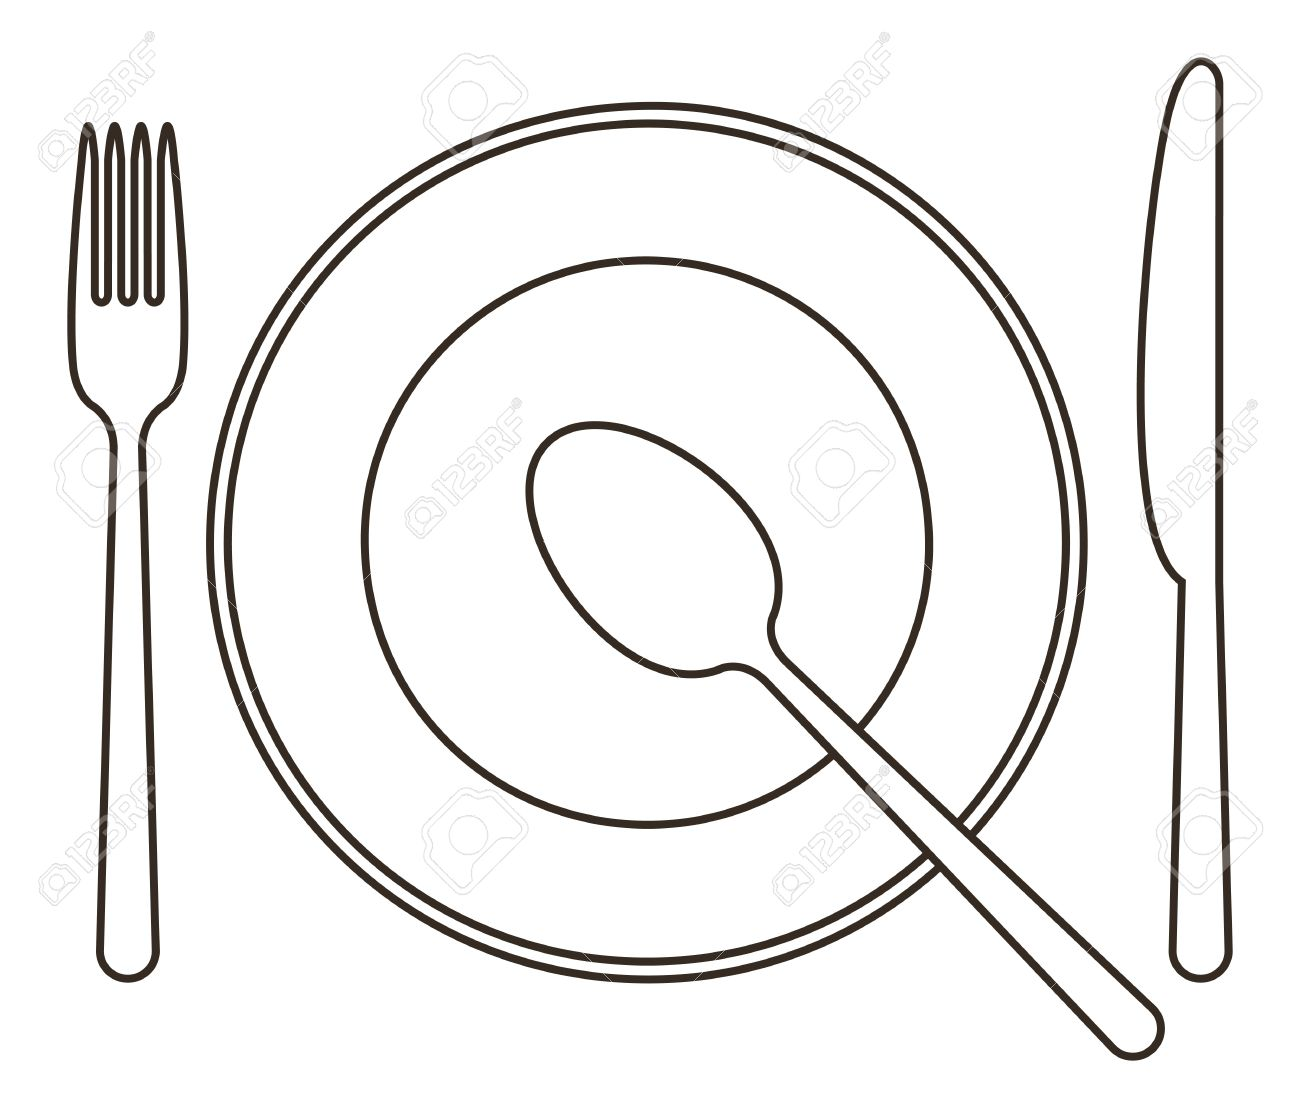 1300x1118 Place Setting With Plate, Knife, Spoon And Fork Royalty Free